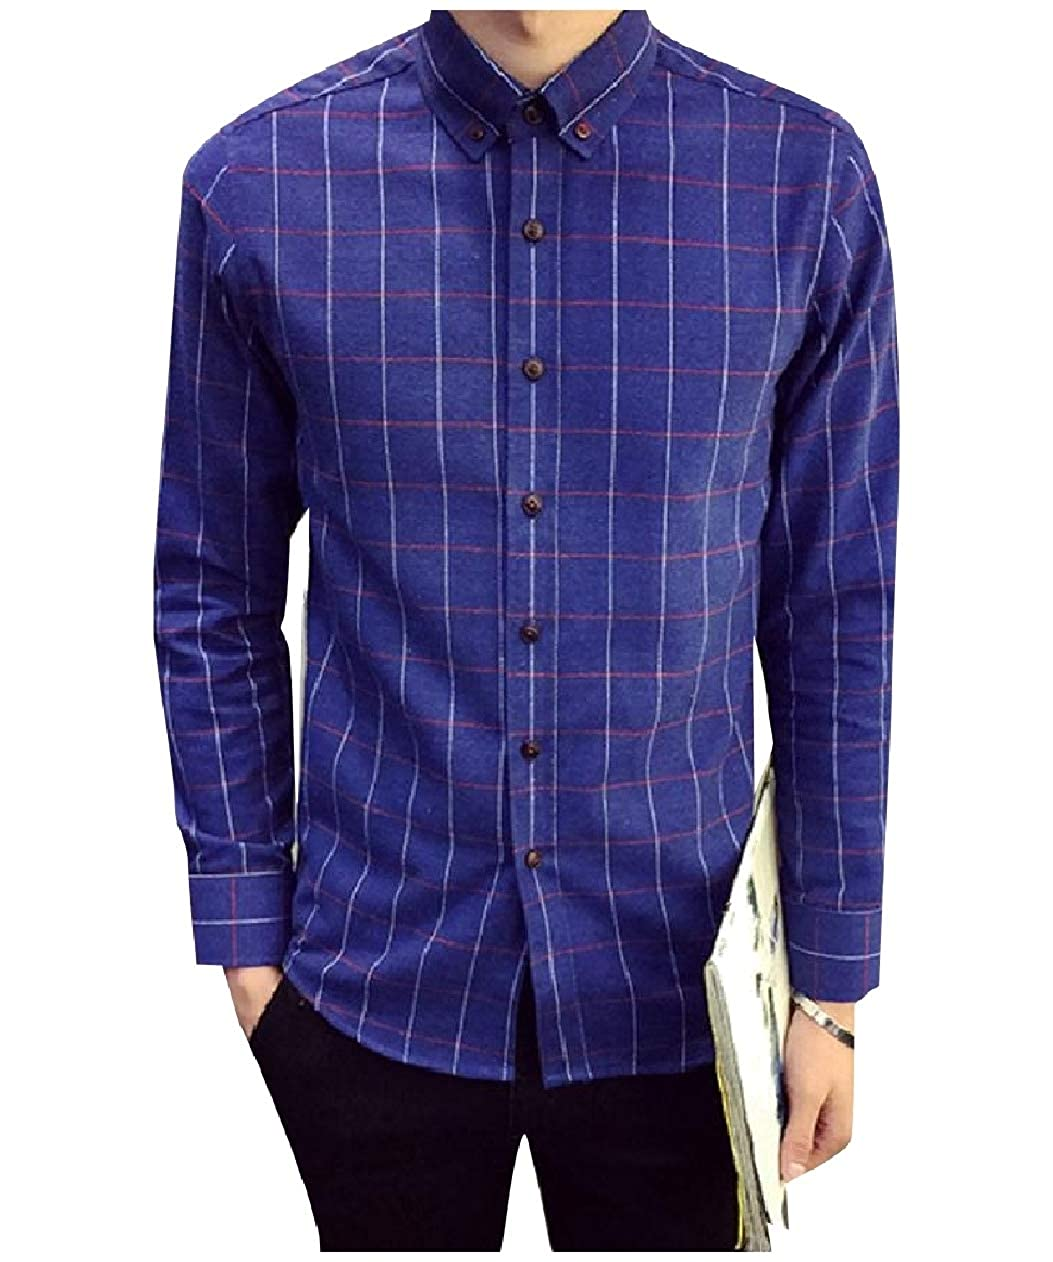 VITryst-Men Slim Fitting Plaid Brushed Buttoned Warm Fleece Lined Shirts